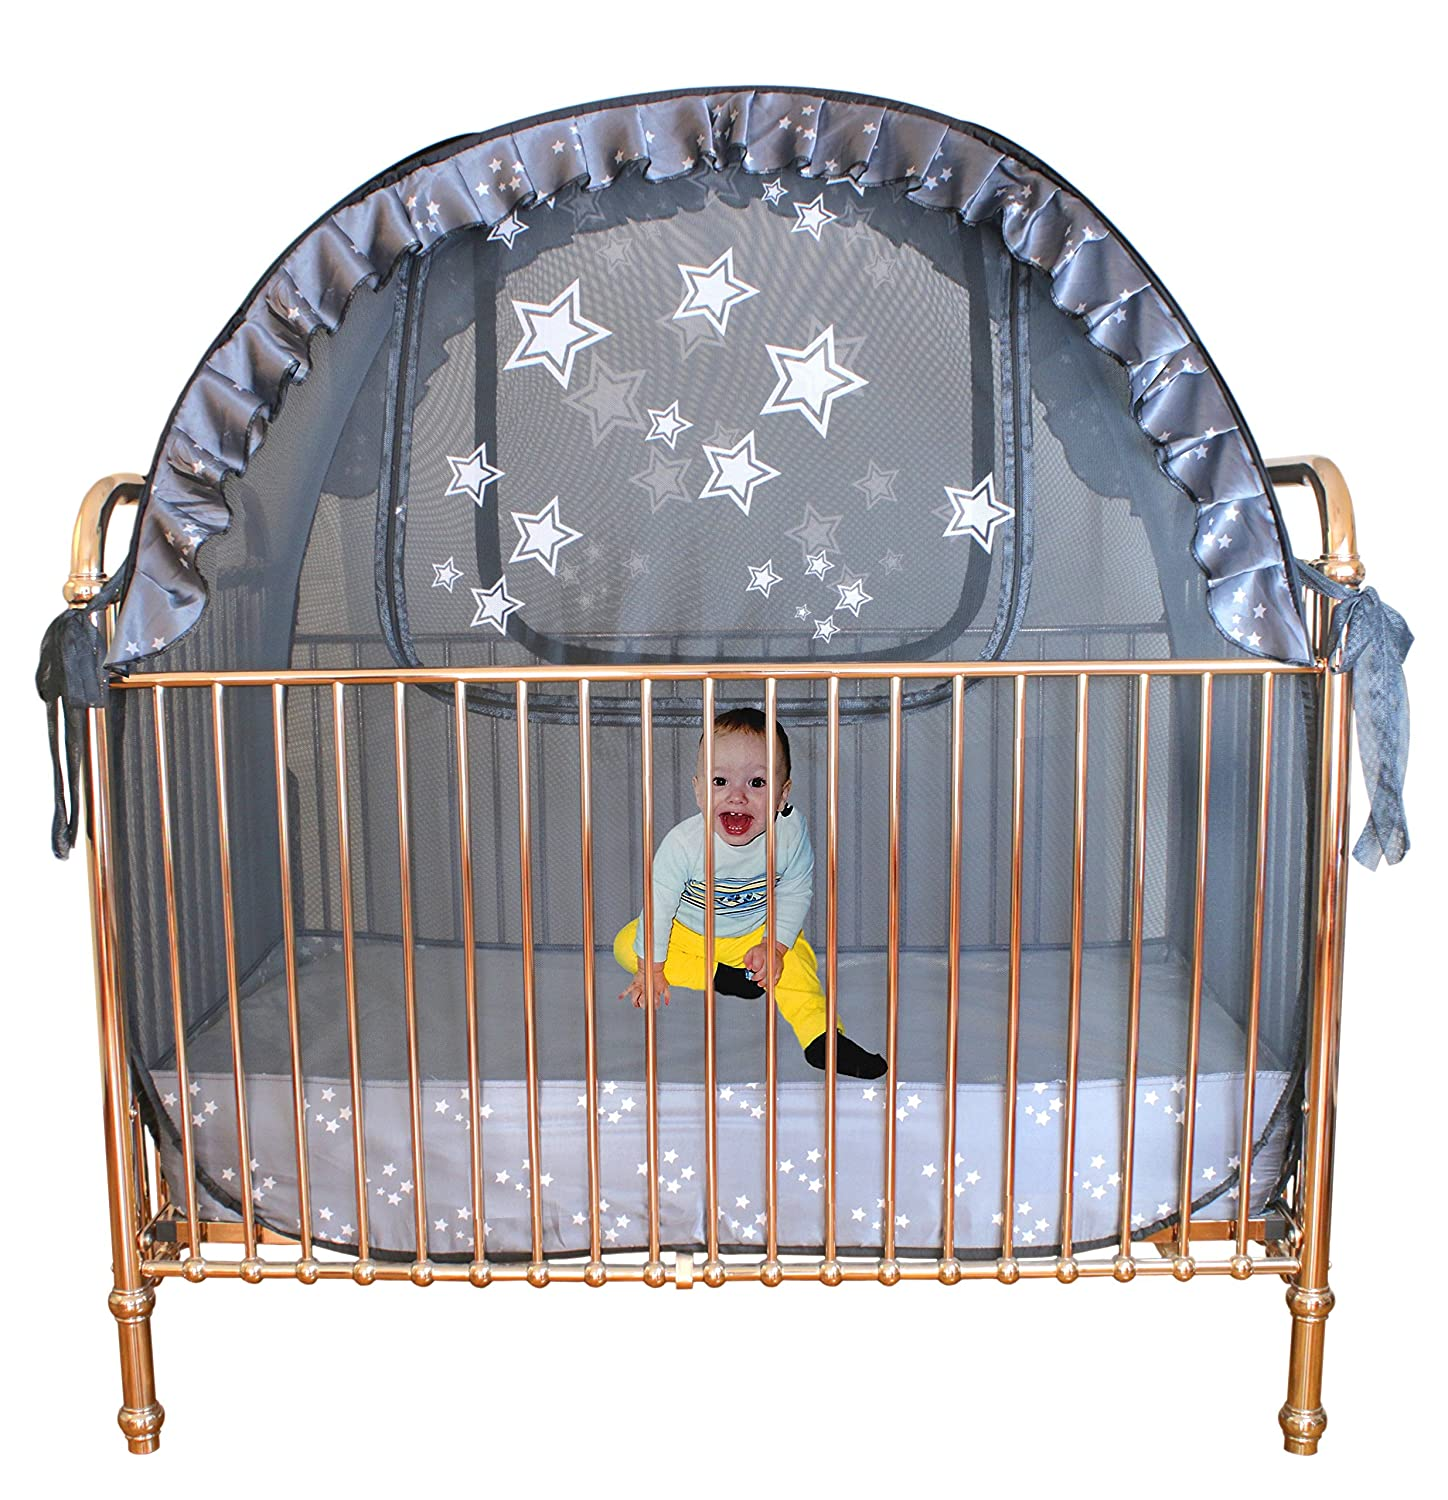 Best Baby Crib Tent Tried and Tested - Safe and Secure - Proven to Keep Your Baby Safe from Climbing Out. Finest Quality Original Australian Design Pop Up Crib Canopy SNCT